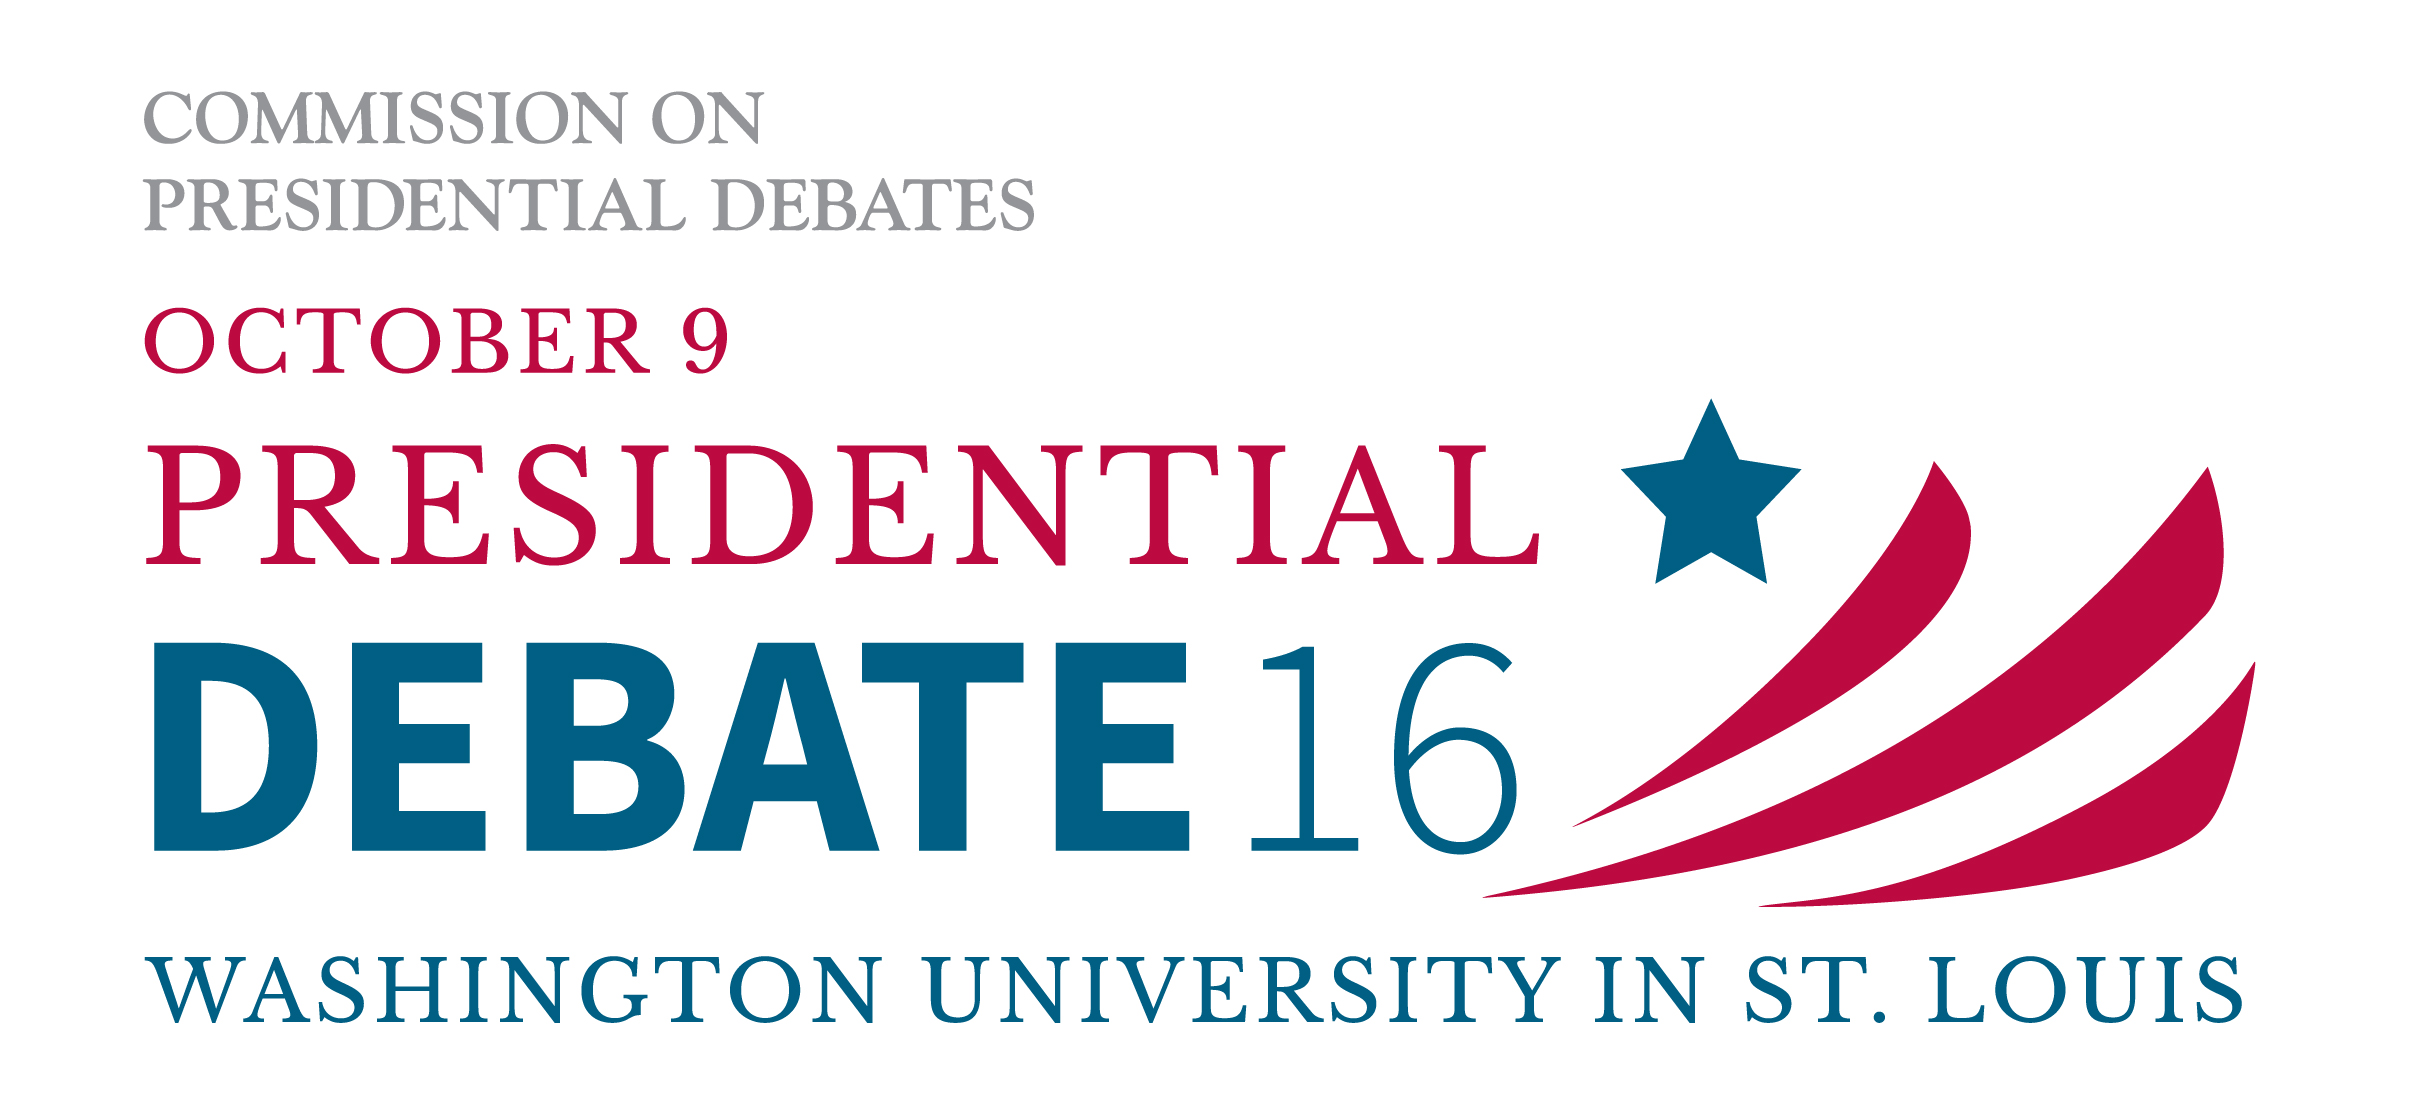 Debate_Logo_2016_Commission_Date.jpg